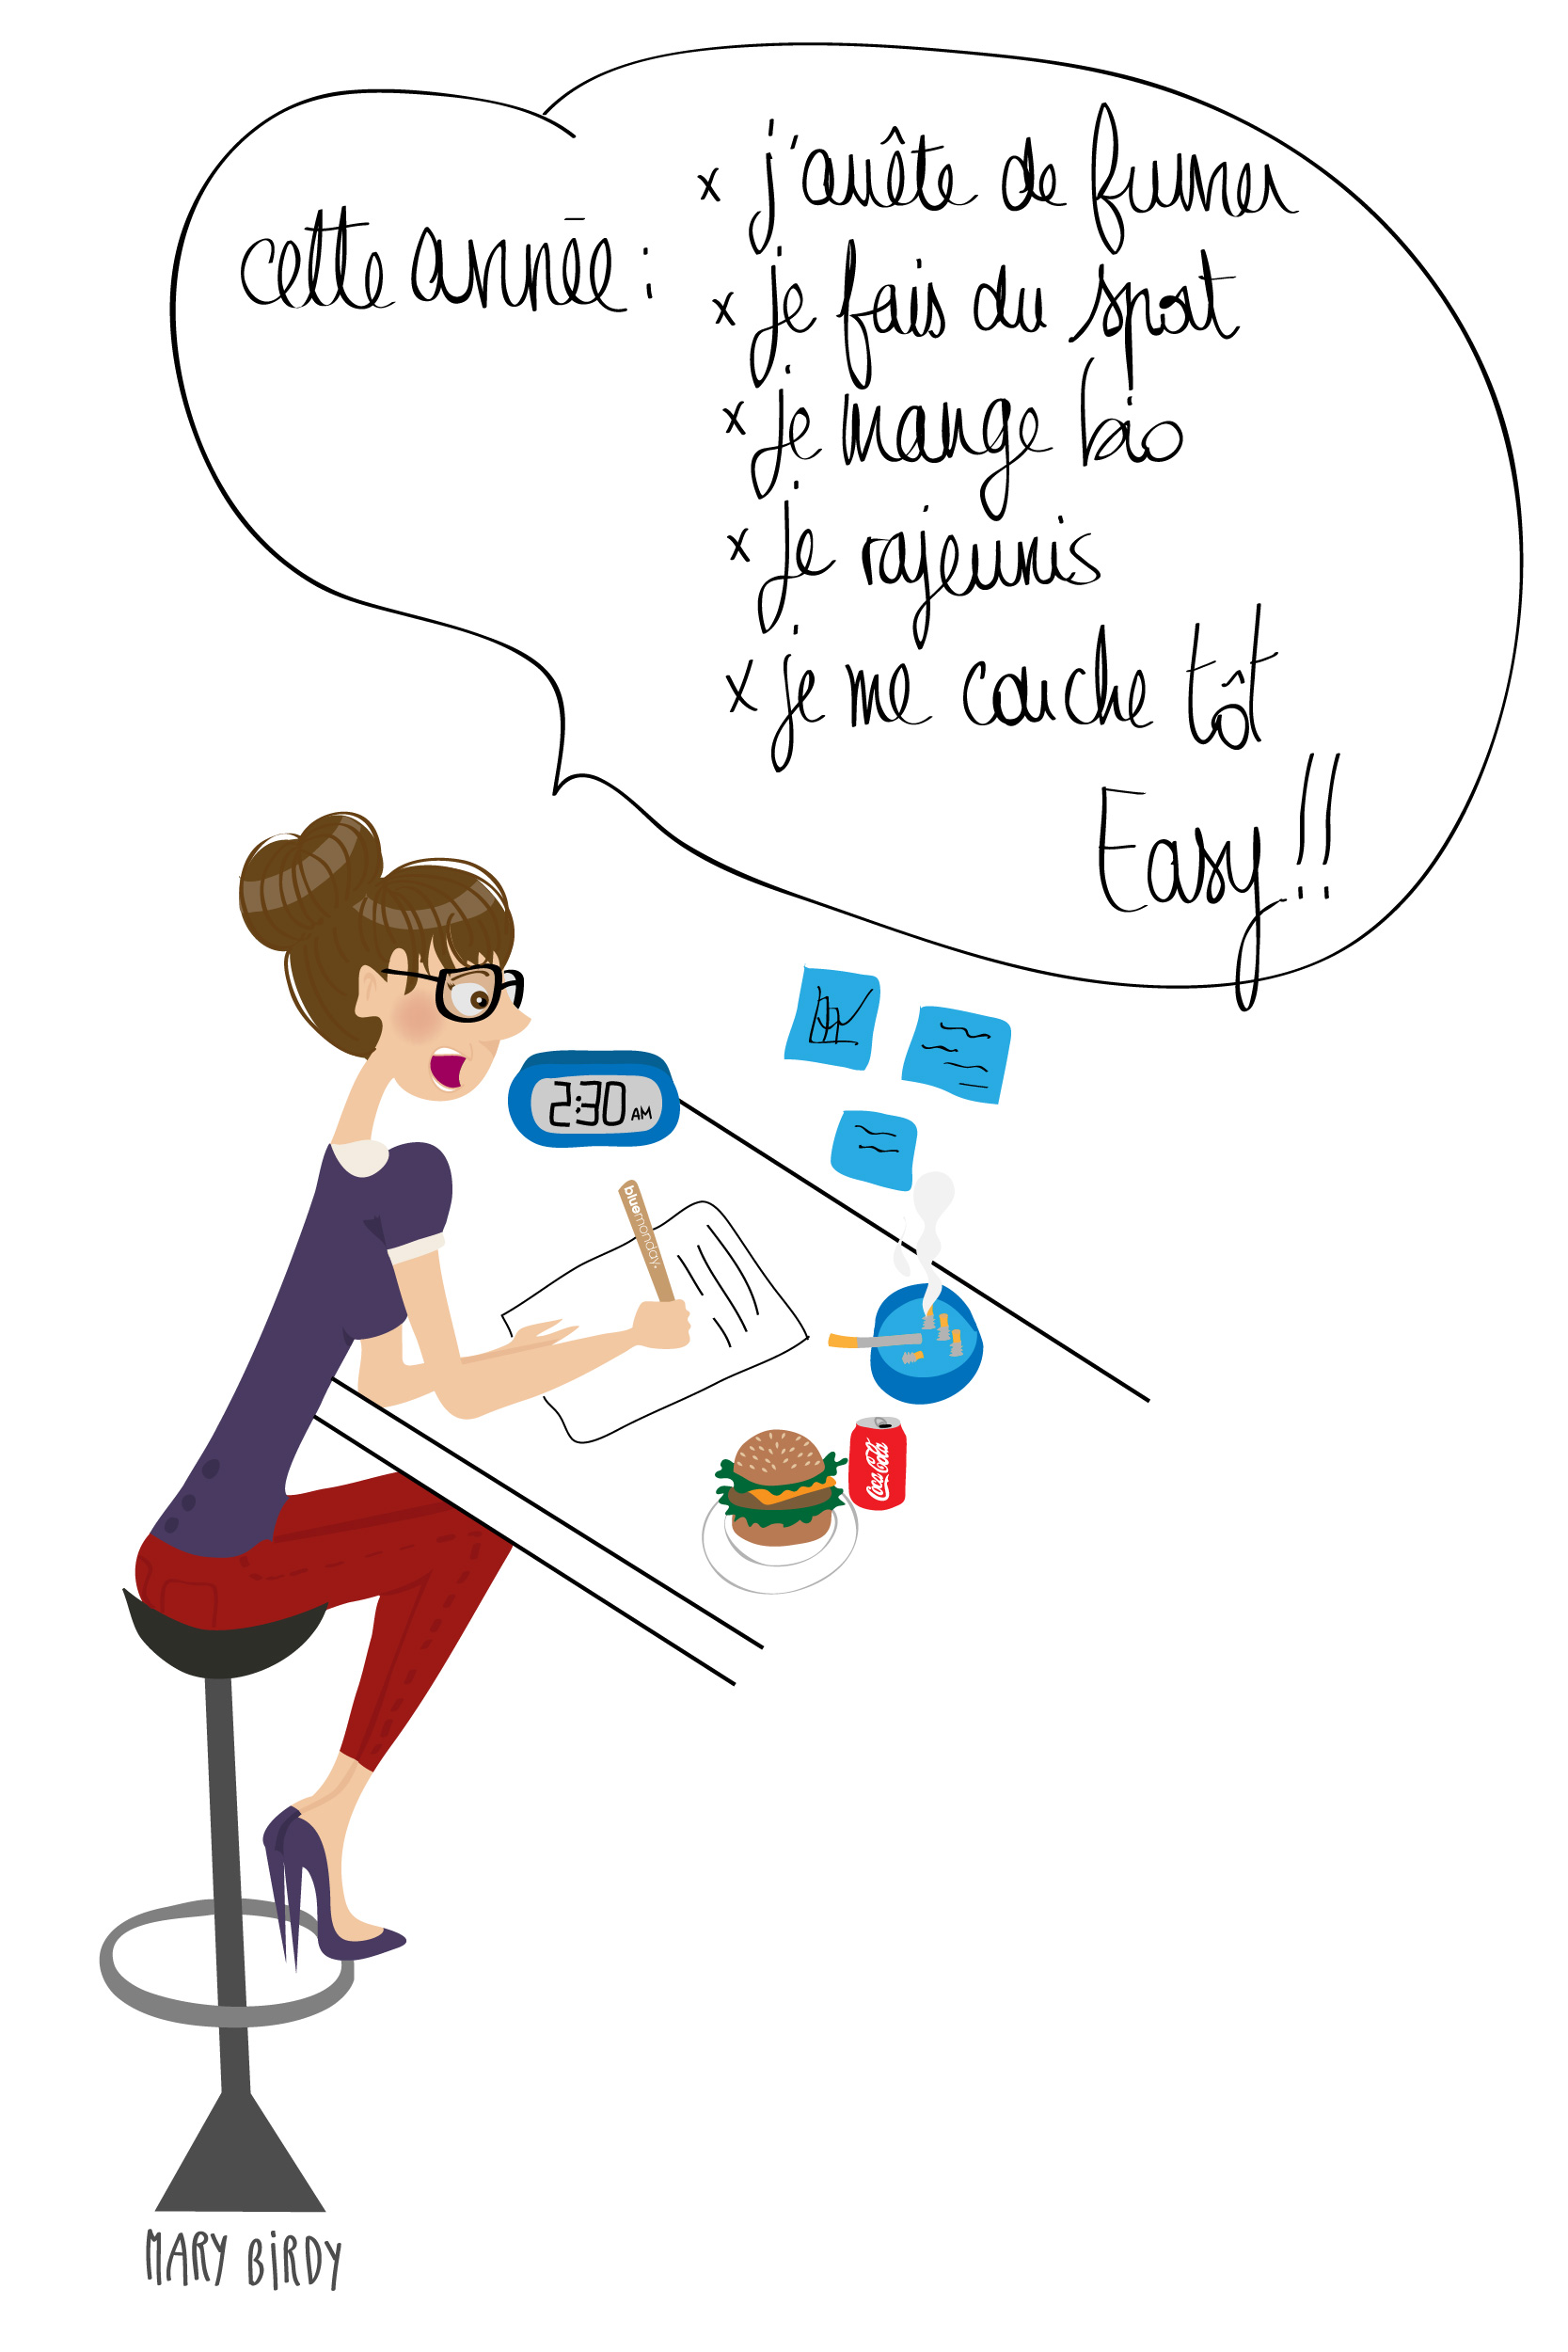 Newsletter JANVIER 2013 Bluemonday par Mary Birdy